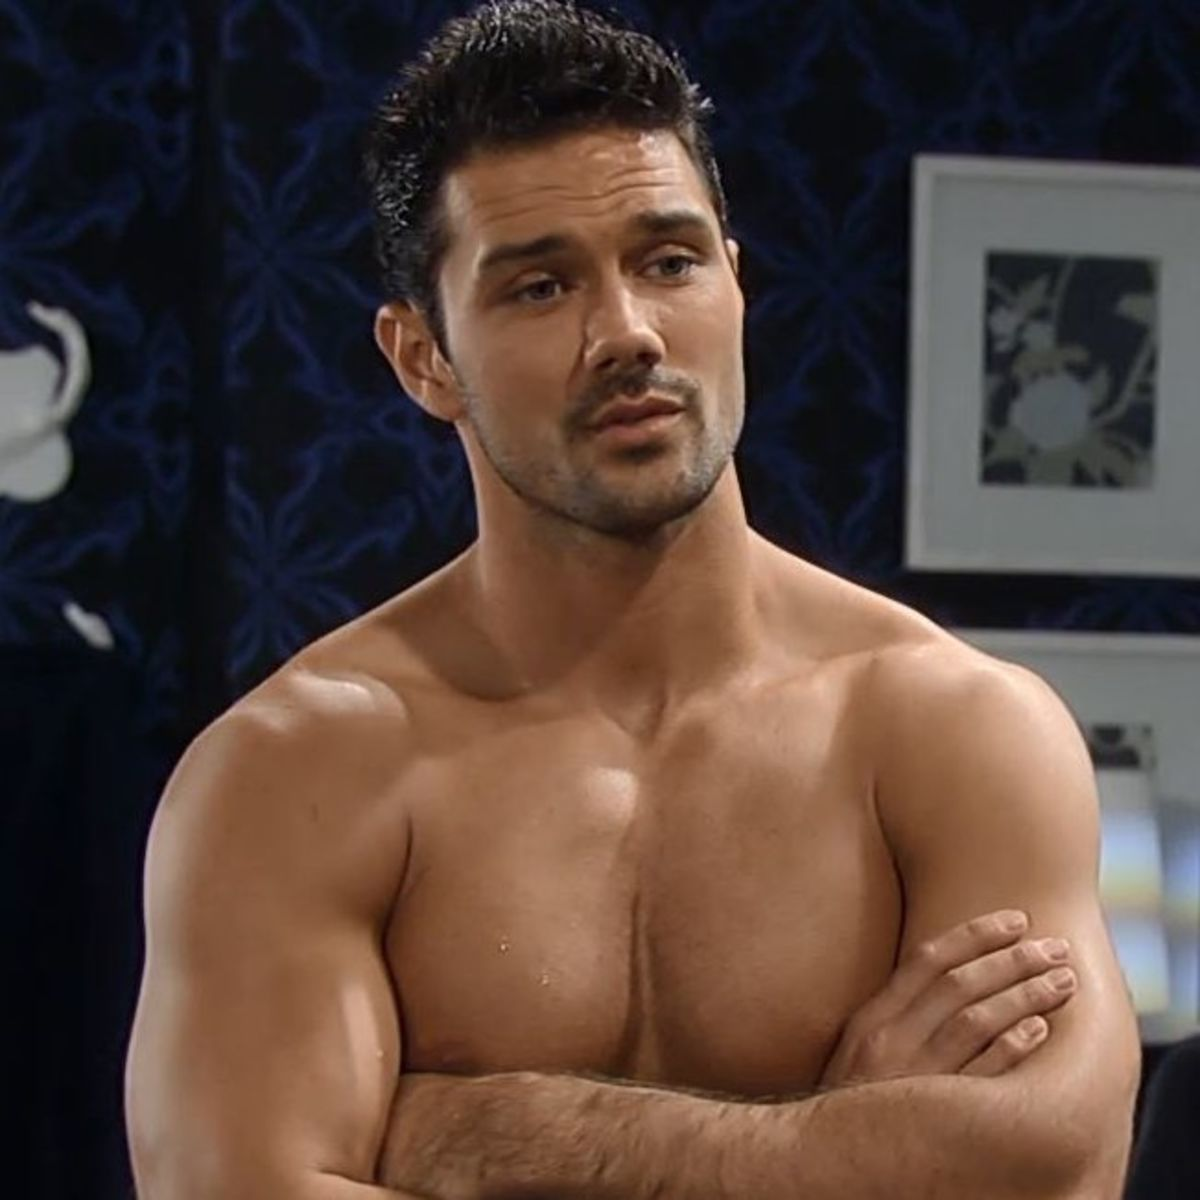 ryan paevey injury